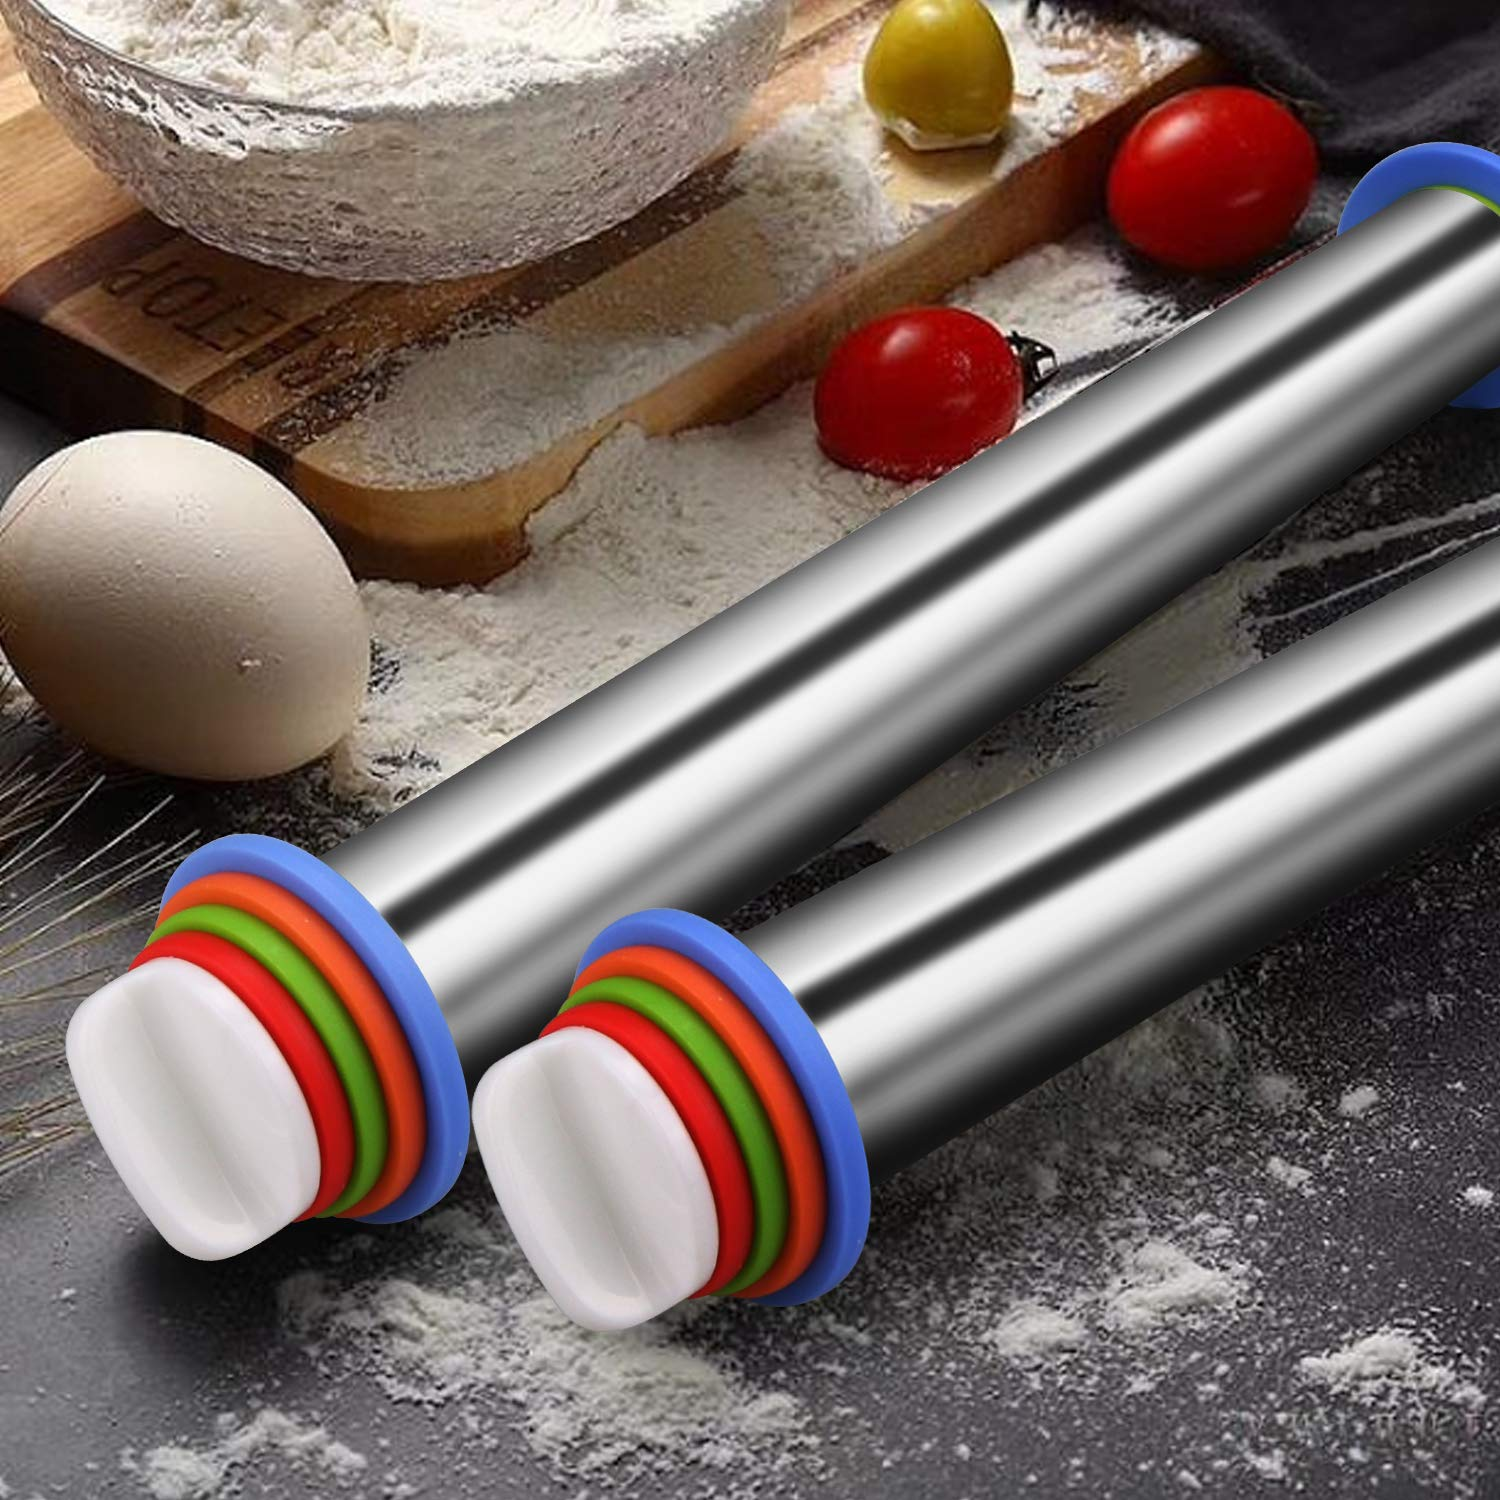 Winkeyes Stainless Steel Rolling Pins, with 4 Adjustable Discs Ring, Non-Stick Rolling Pin for Fondant, Baking Dough Pizza Pie Cookies and Pastry Cookies by Winkeyes (Image #6)